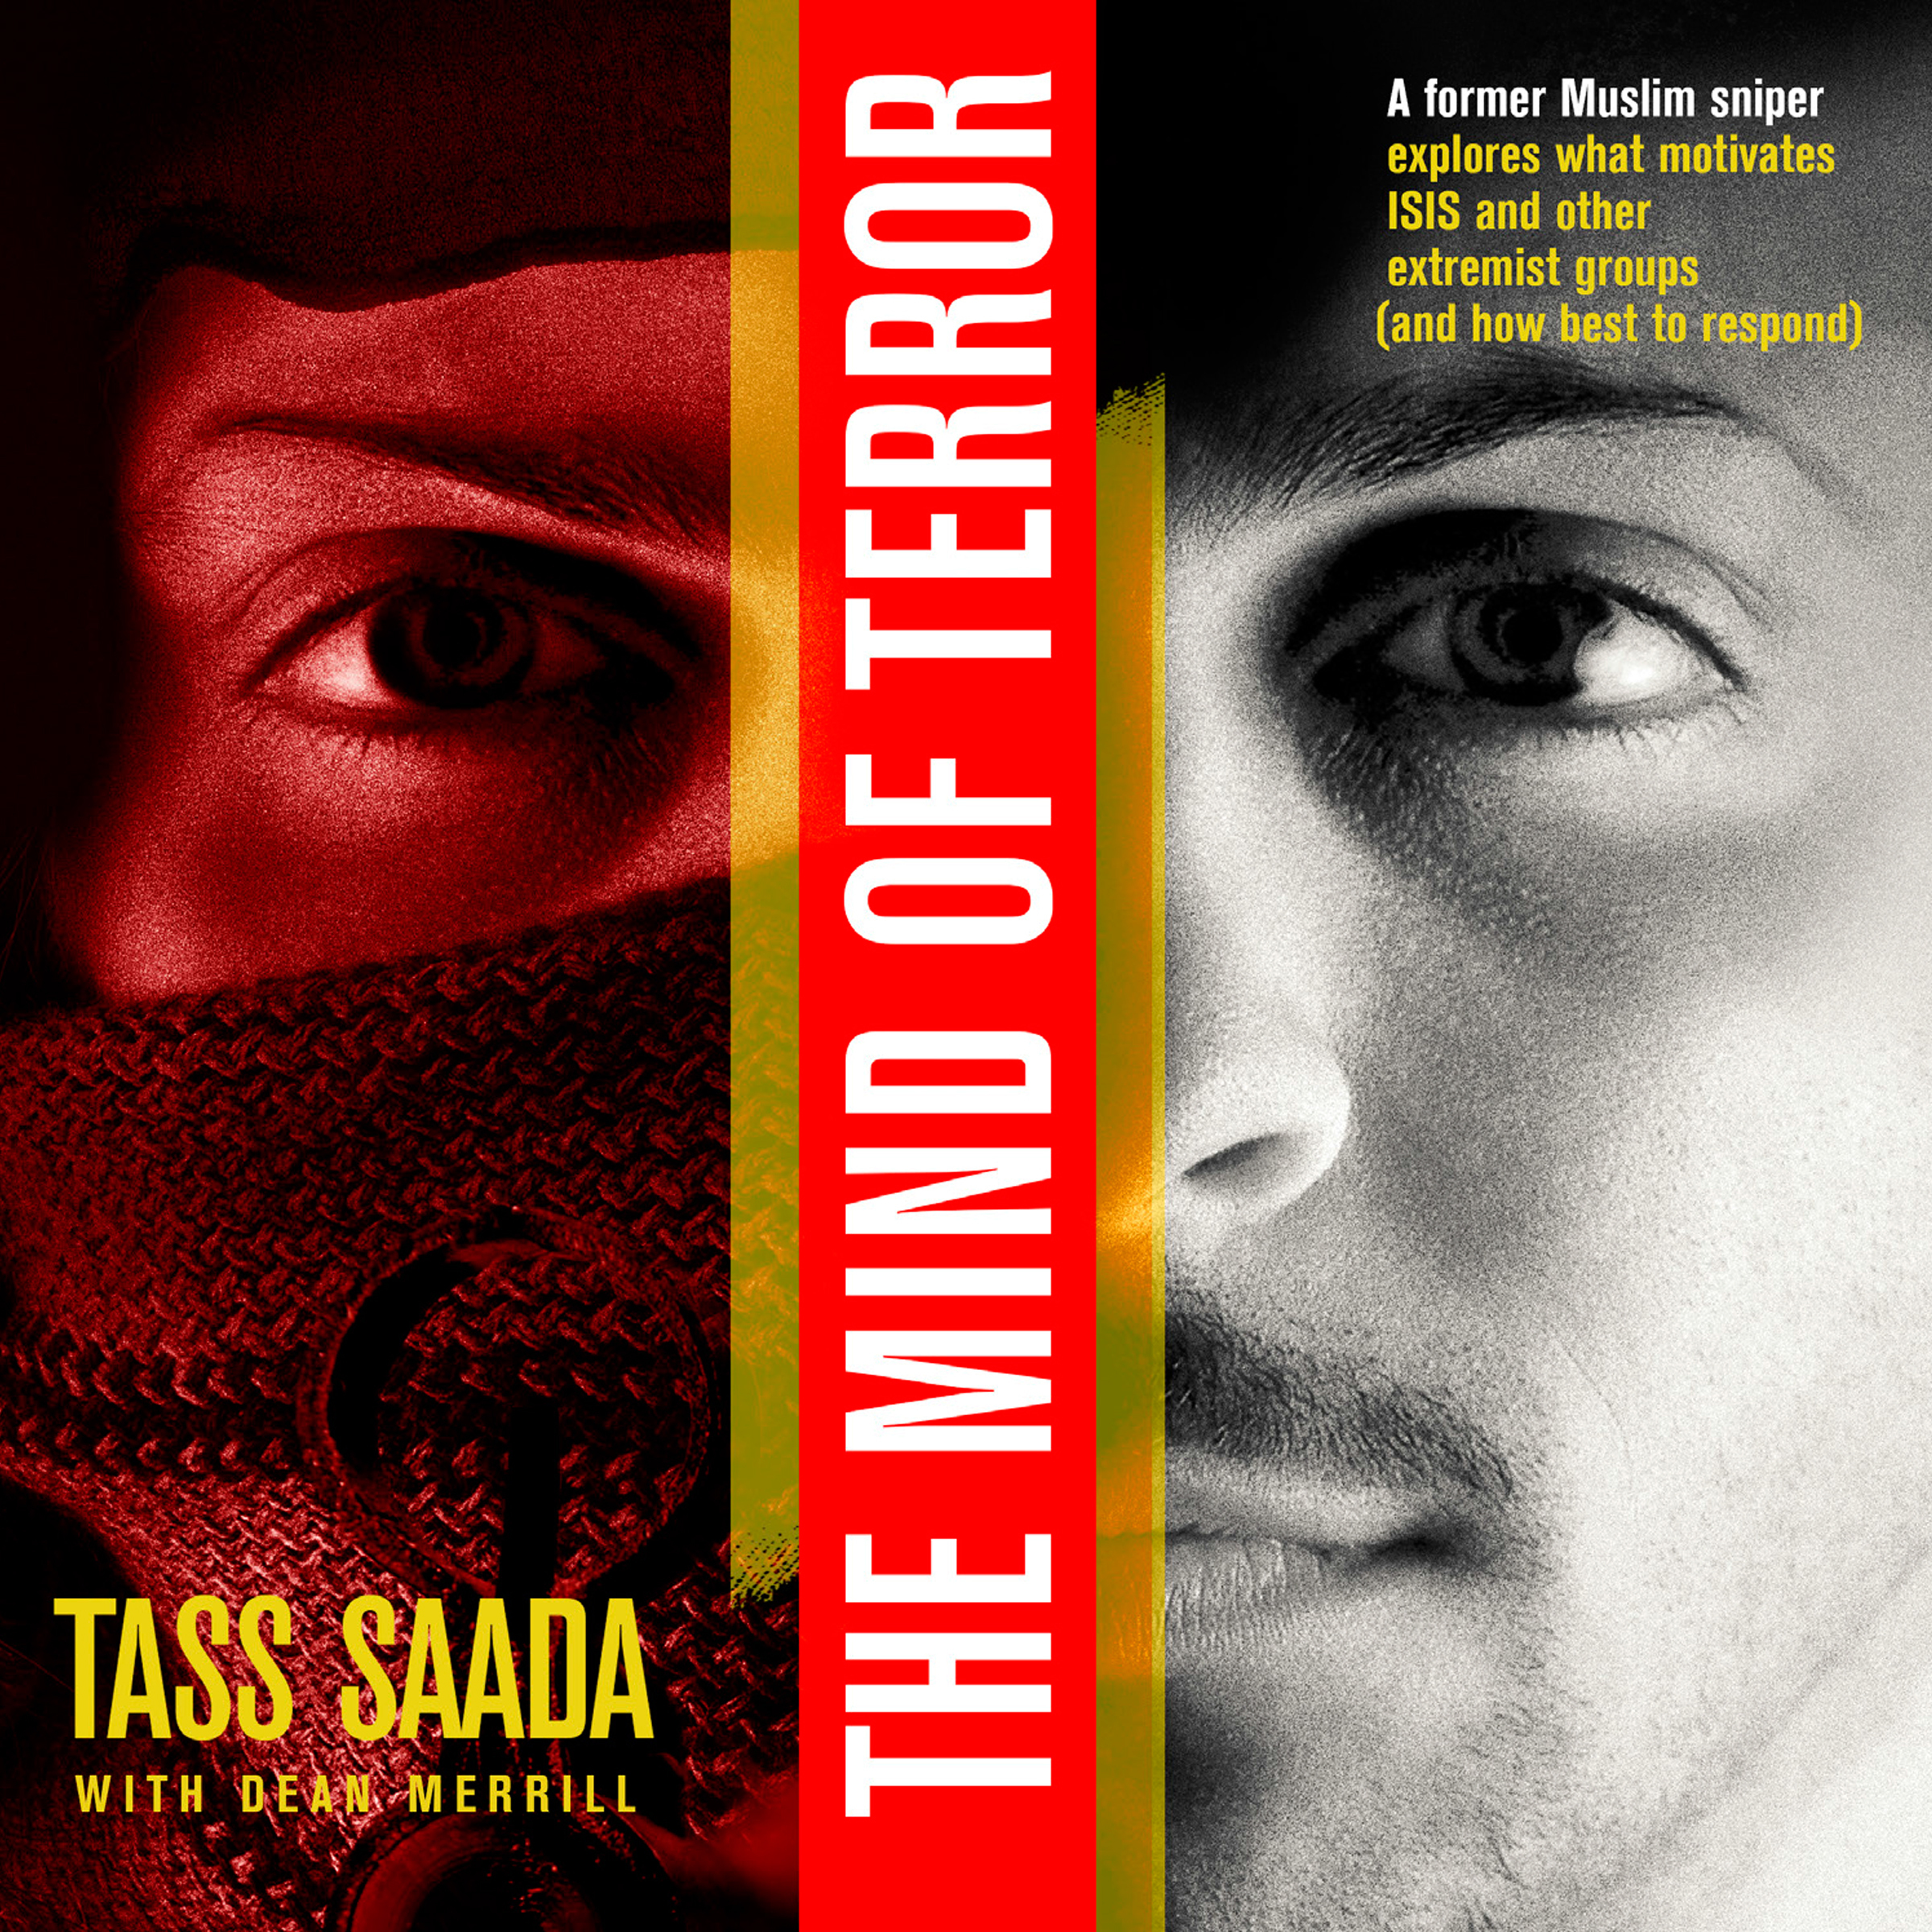 Printable The Mind of Terror: A Former Muslim Sniper Explores What Motiviates ISIS and other Extremist Groups (and how best to respond) Audiobook Cover Art